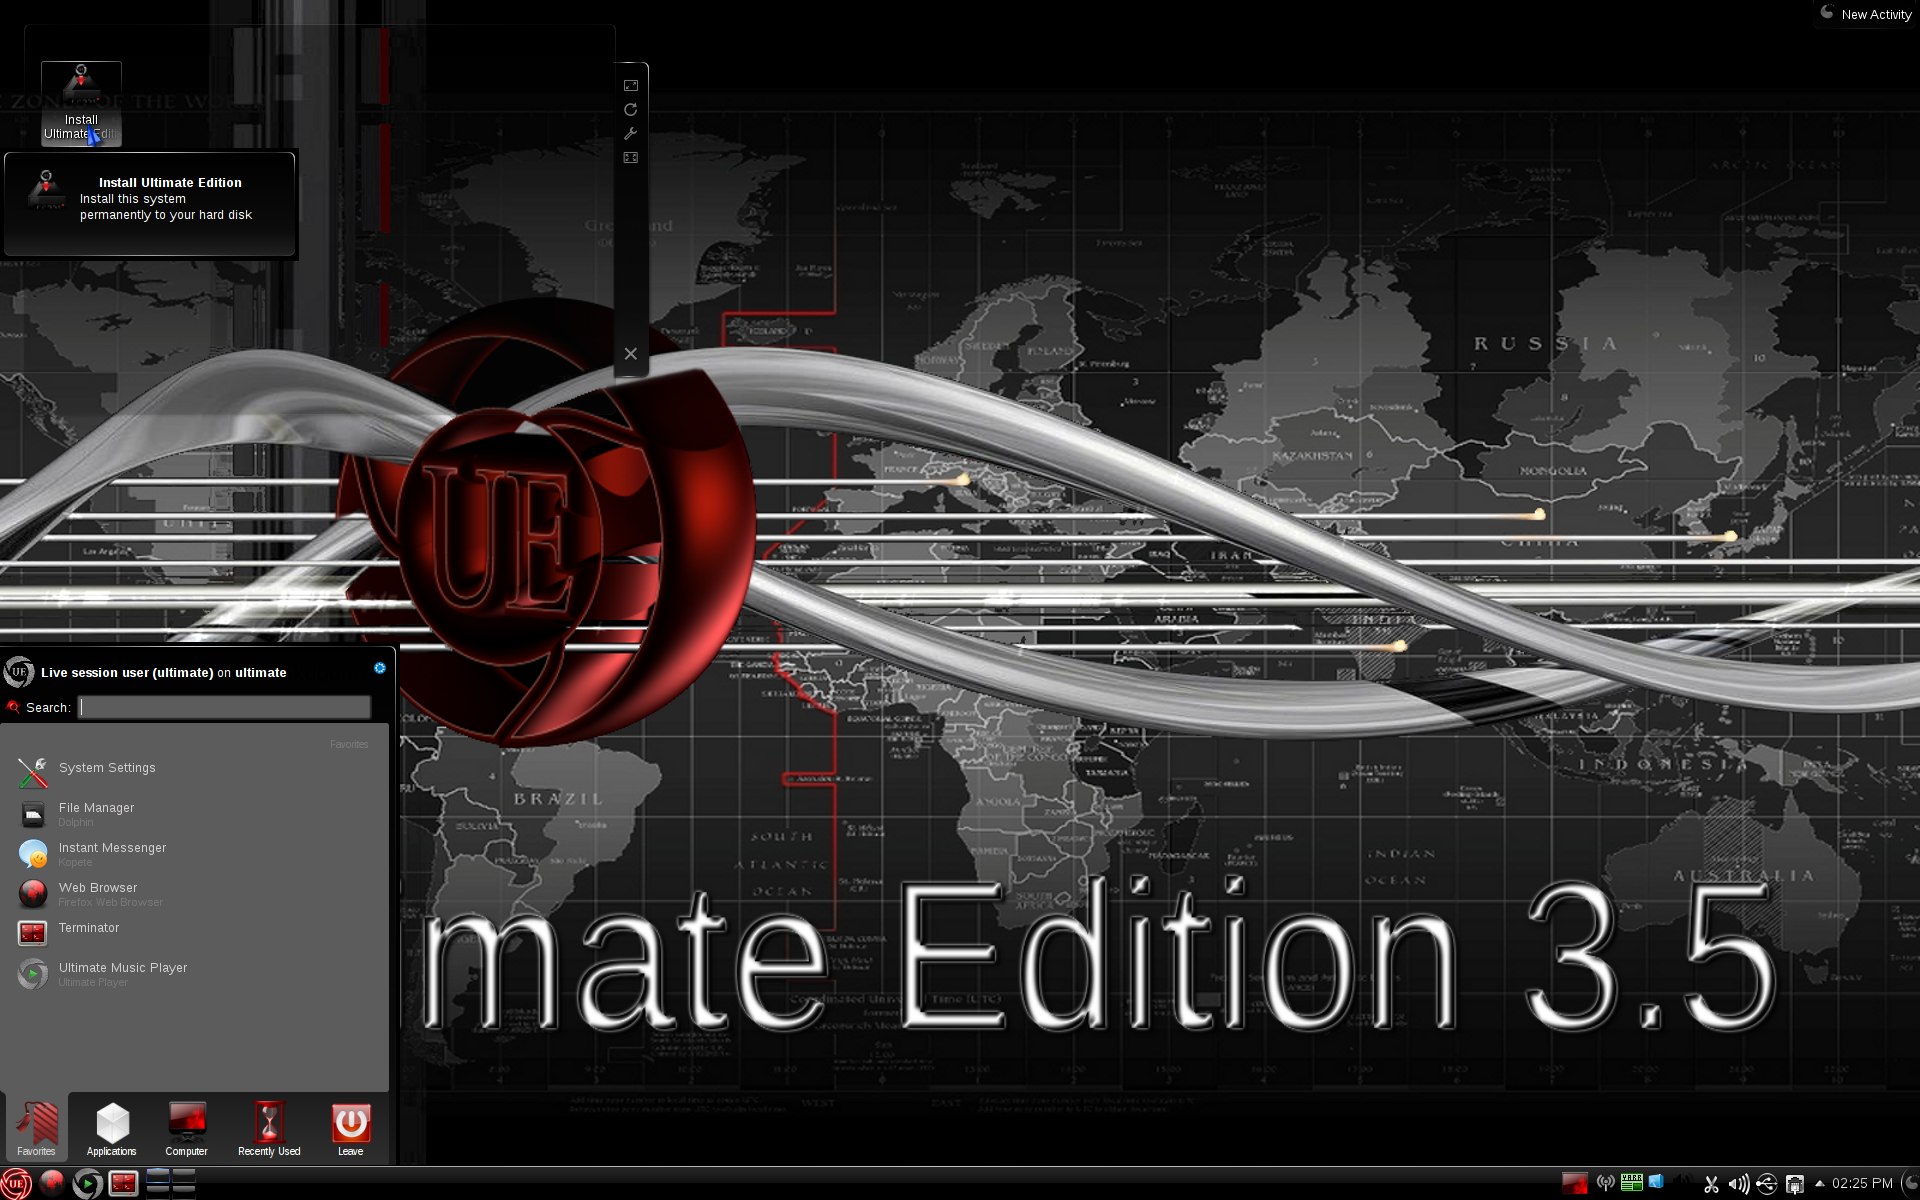 http://ultimateedition.info/Ultimate_Edition_3.5/2.png